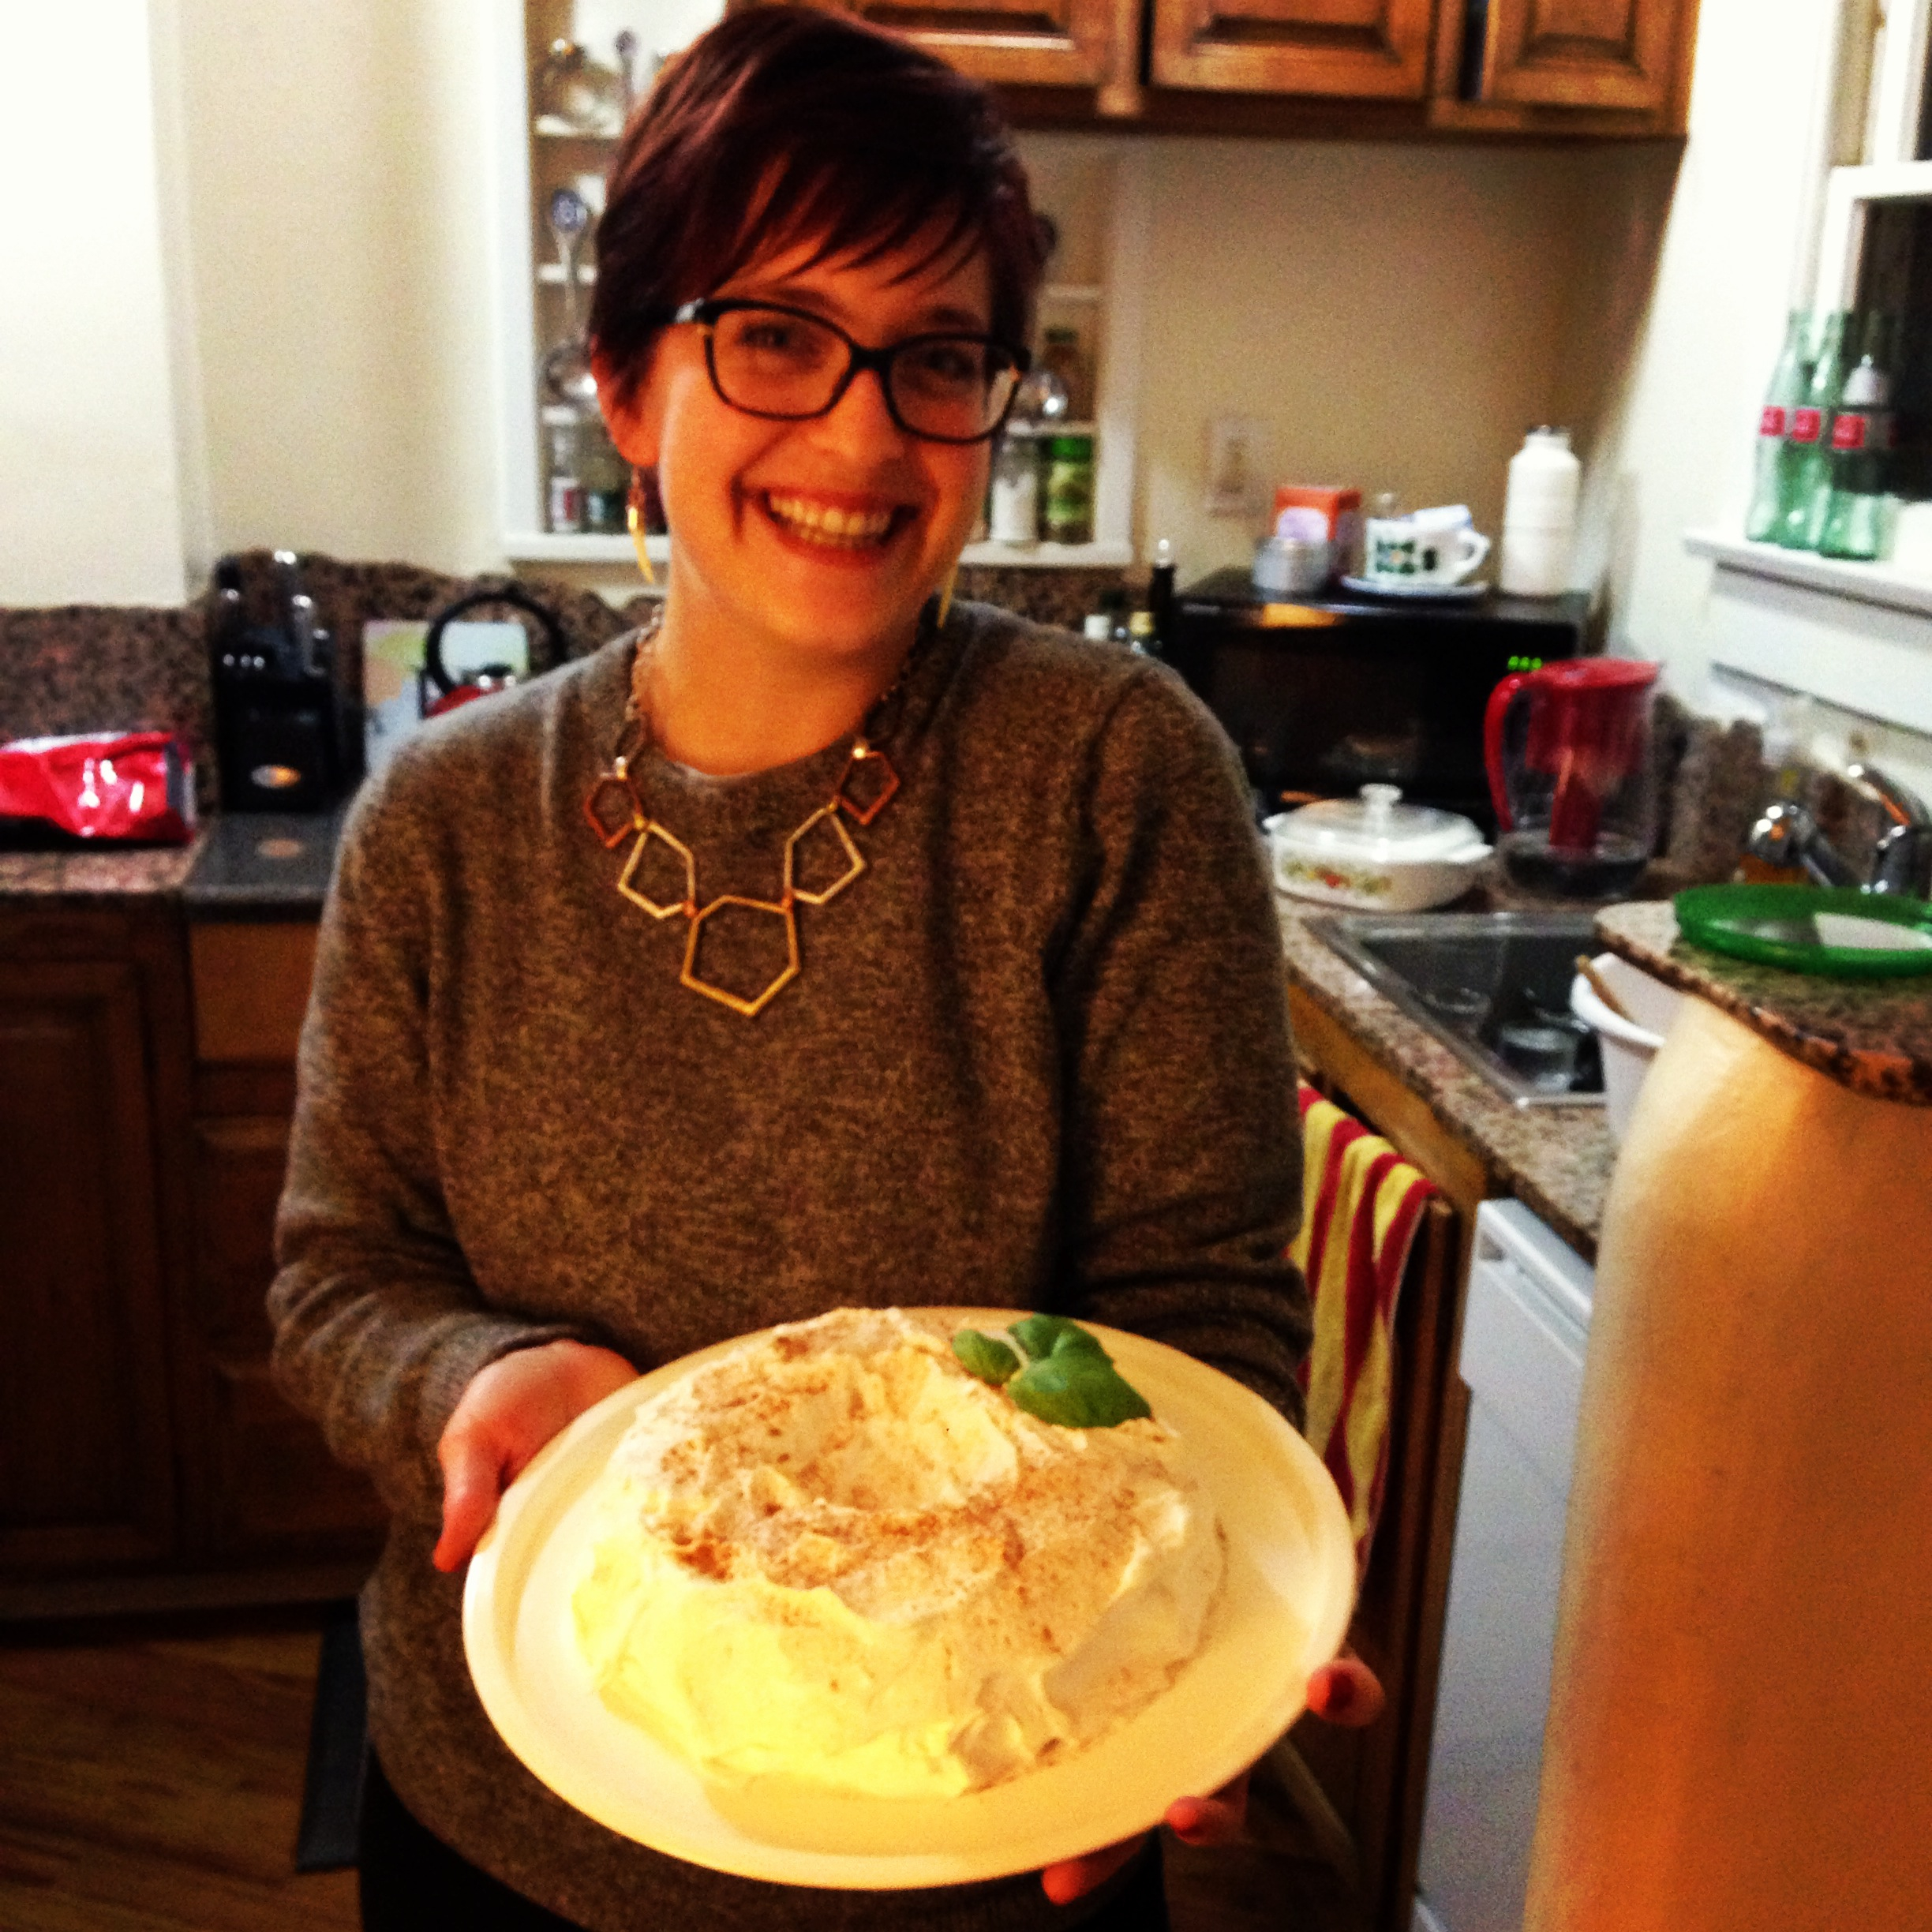 decorator heidi w/ basil leaf & cinnamon additions